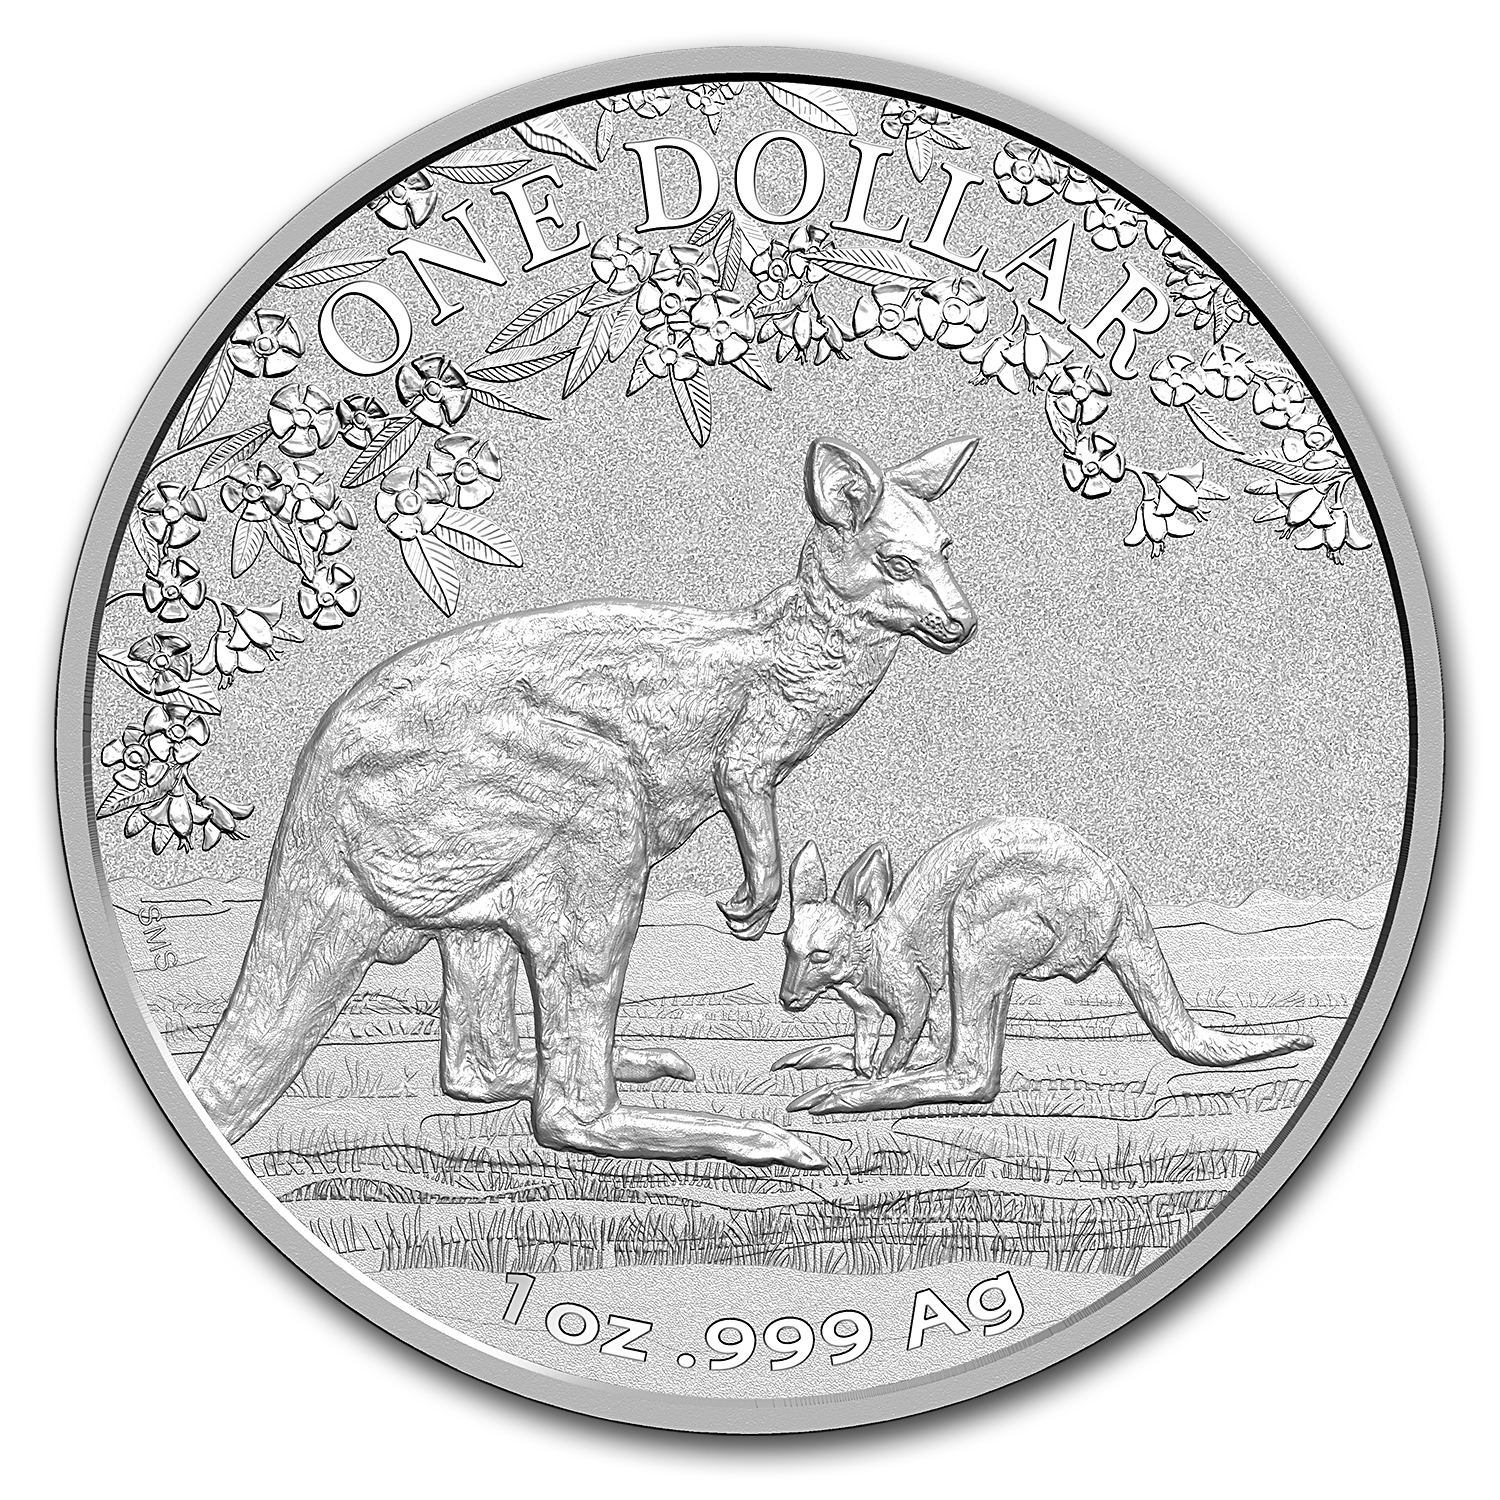 2017 Australia 1 oz Silver Kangaroo (Display Card)